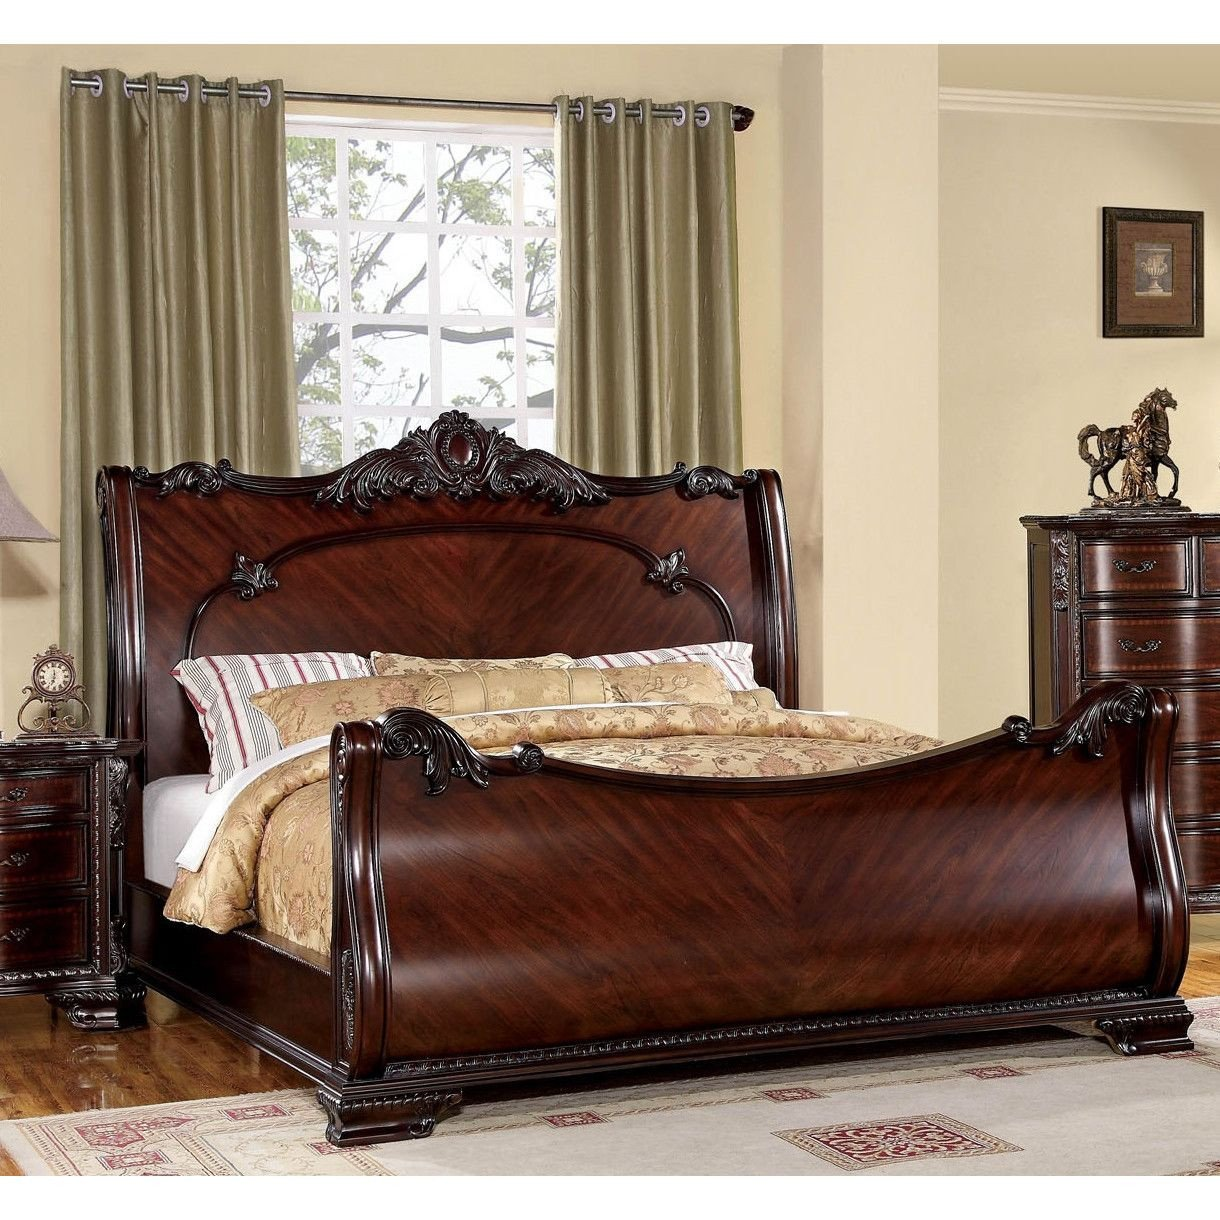 Grand Furniture Bedroom Set Inspirational Barstow Sleigh Bed